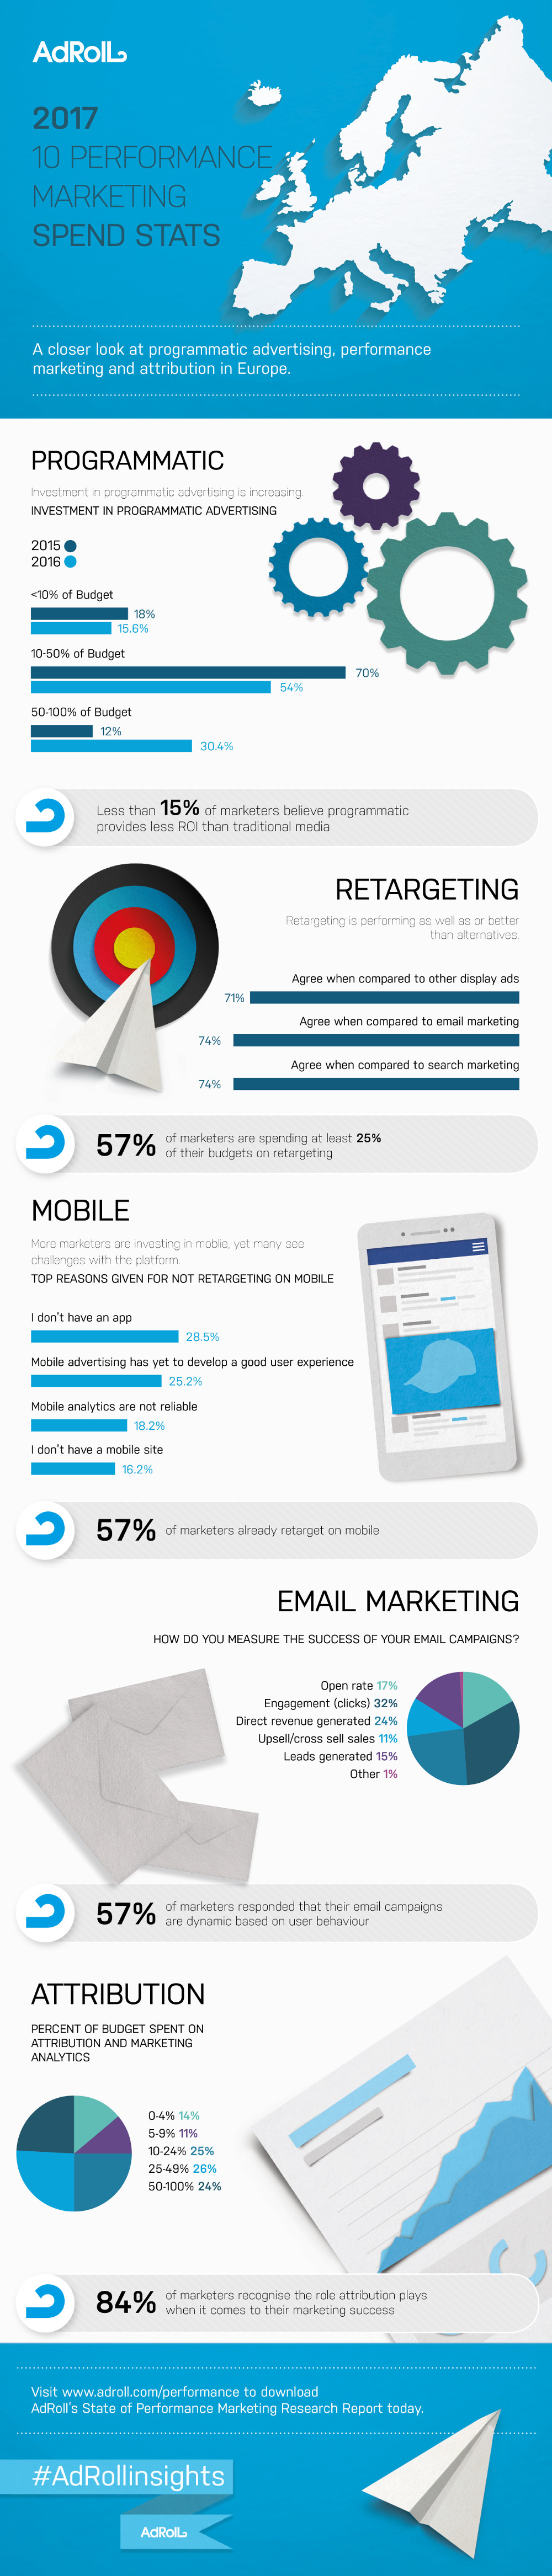 Marketing Stats Marketers Should Know: Europe